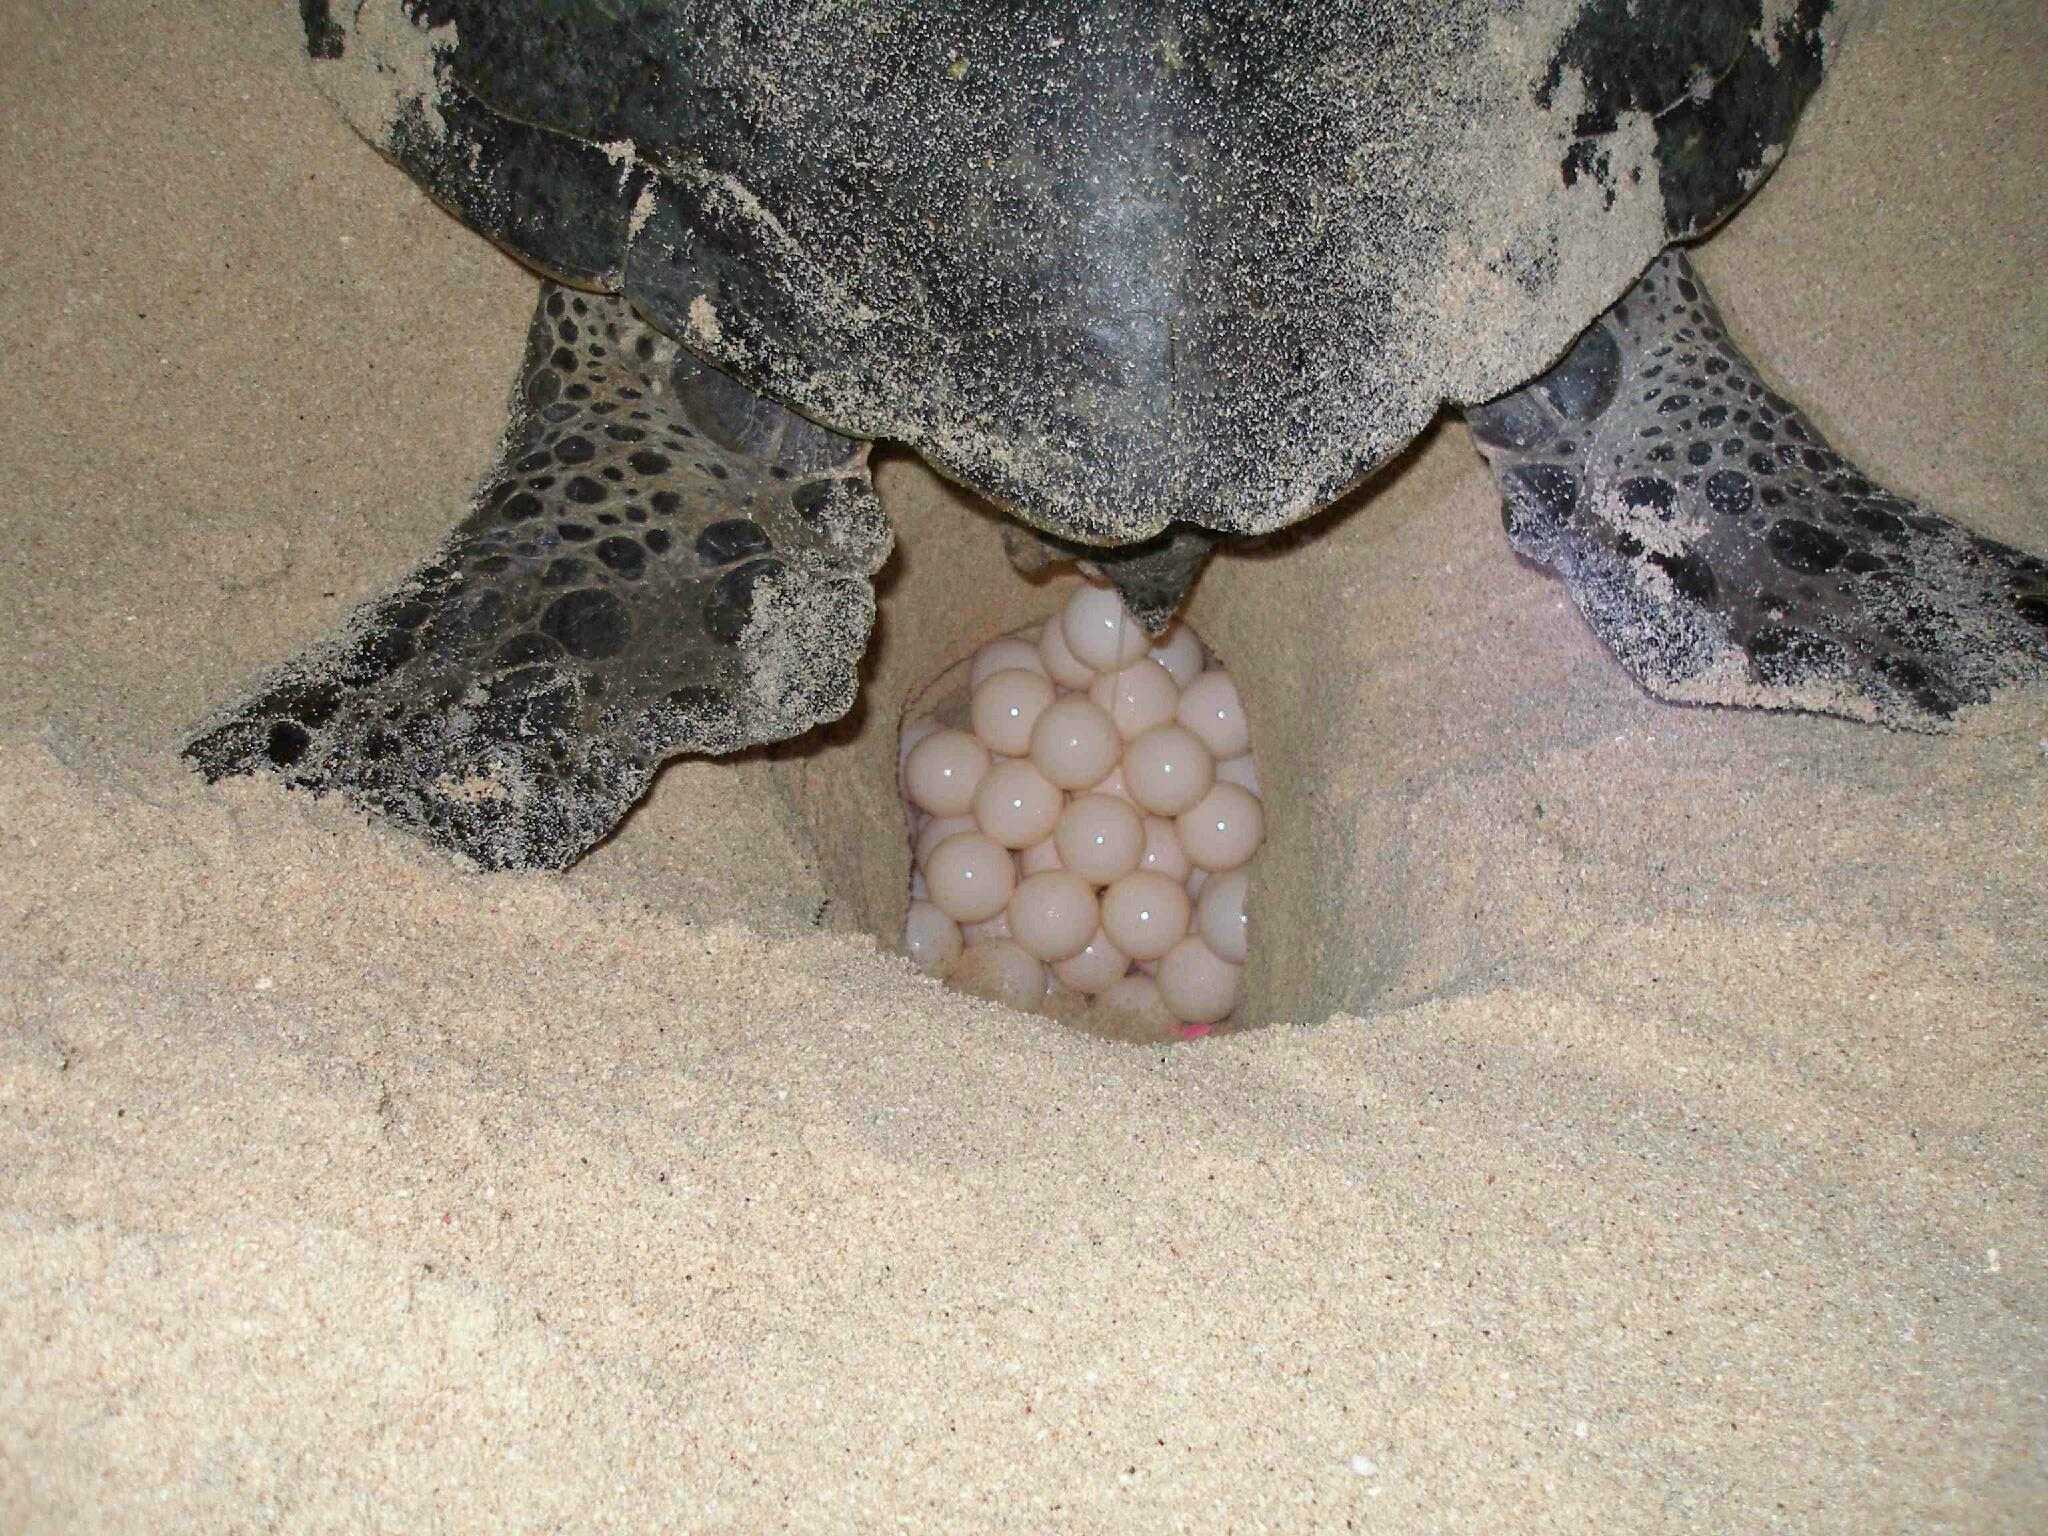 RT @turtlesatJCU: @WeAreAustralia a mother turtle lays her eggs. The sex of the hatchling depends on temperature, warm = more females http://t.co/I02GquO7iL